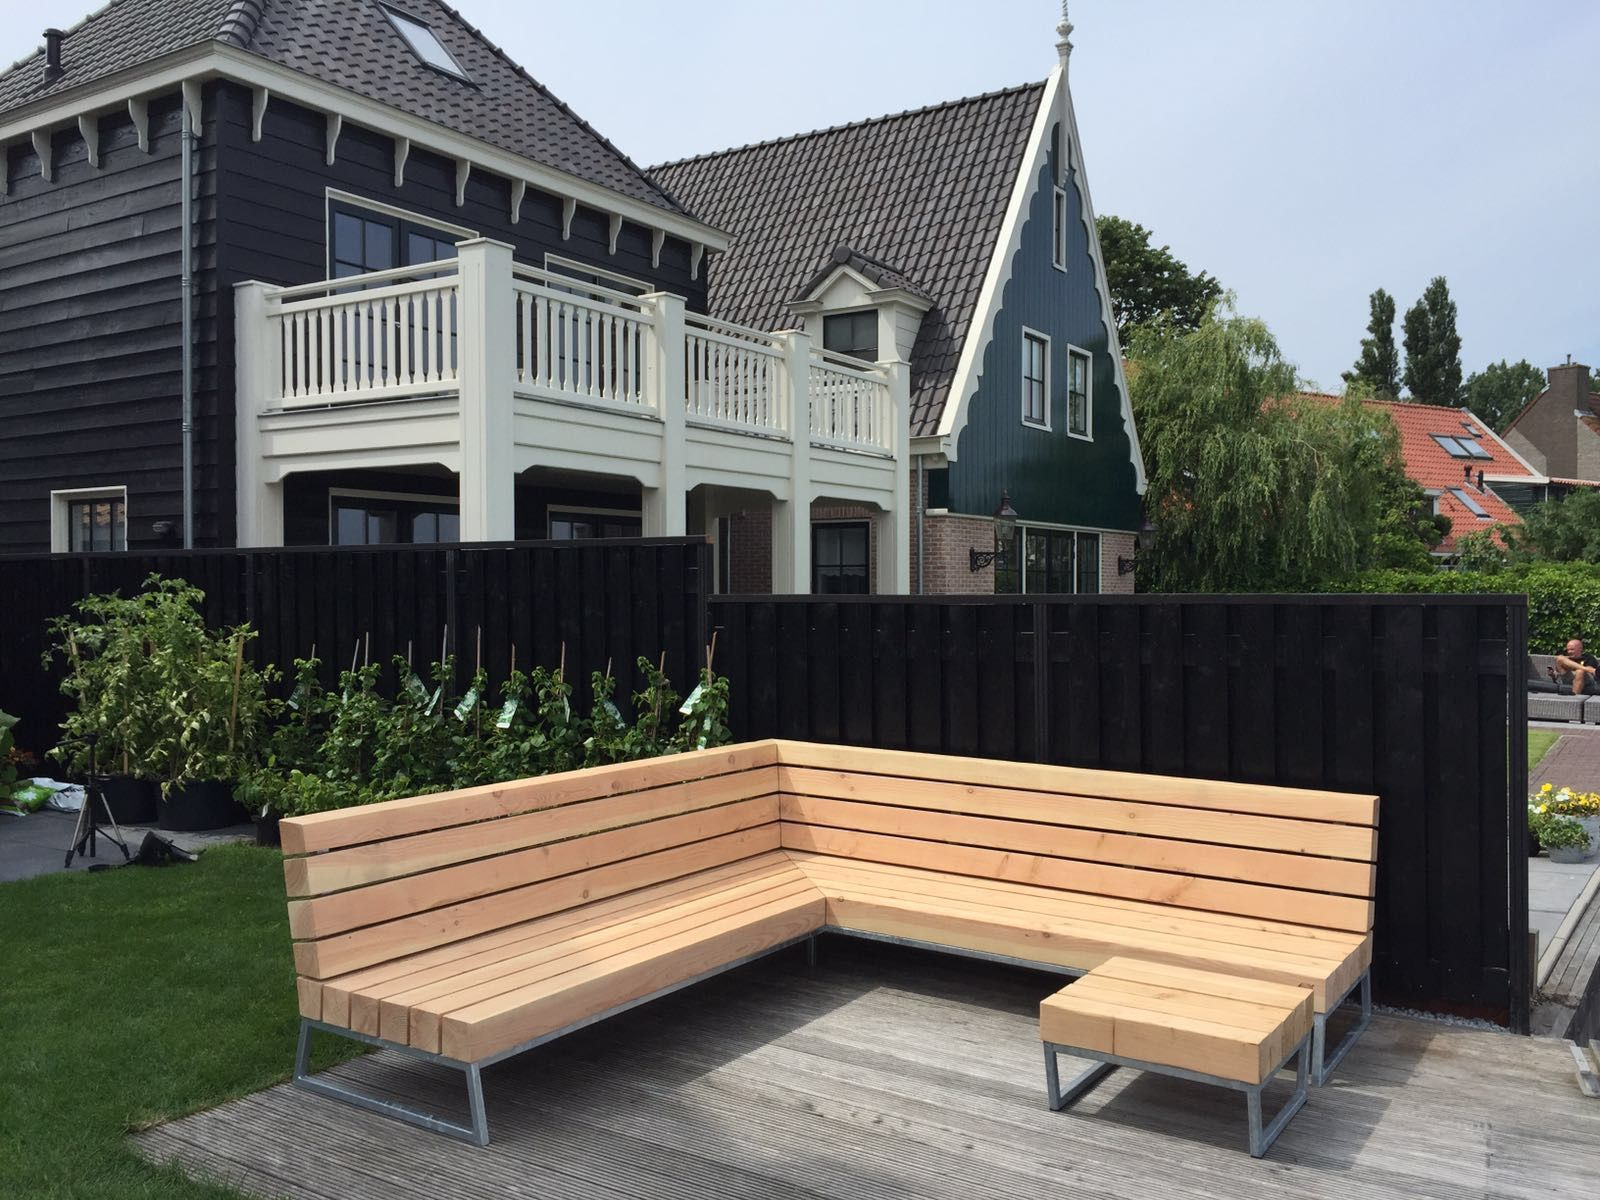 Tuin Loungebank Outlet.Robuuste Loungebank Voor In De Tuin Garden 1 Backyard Furniture